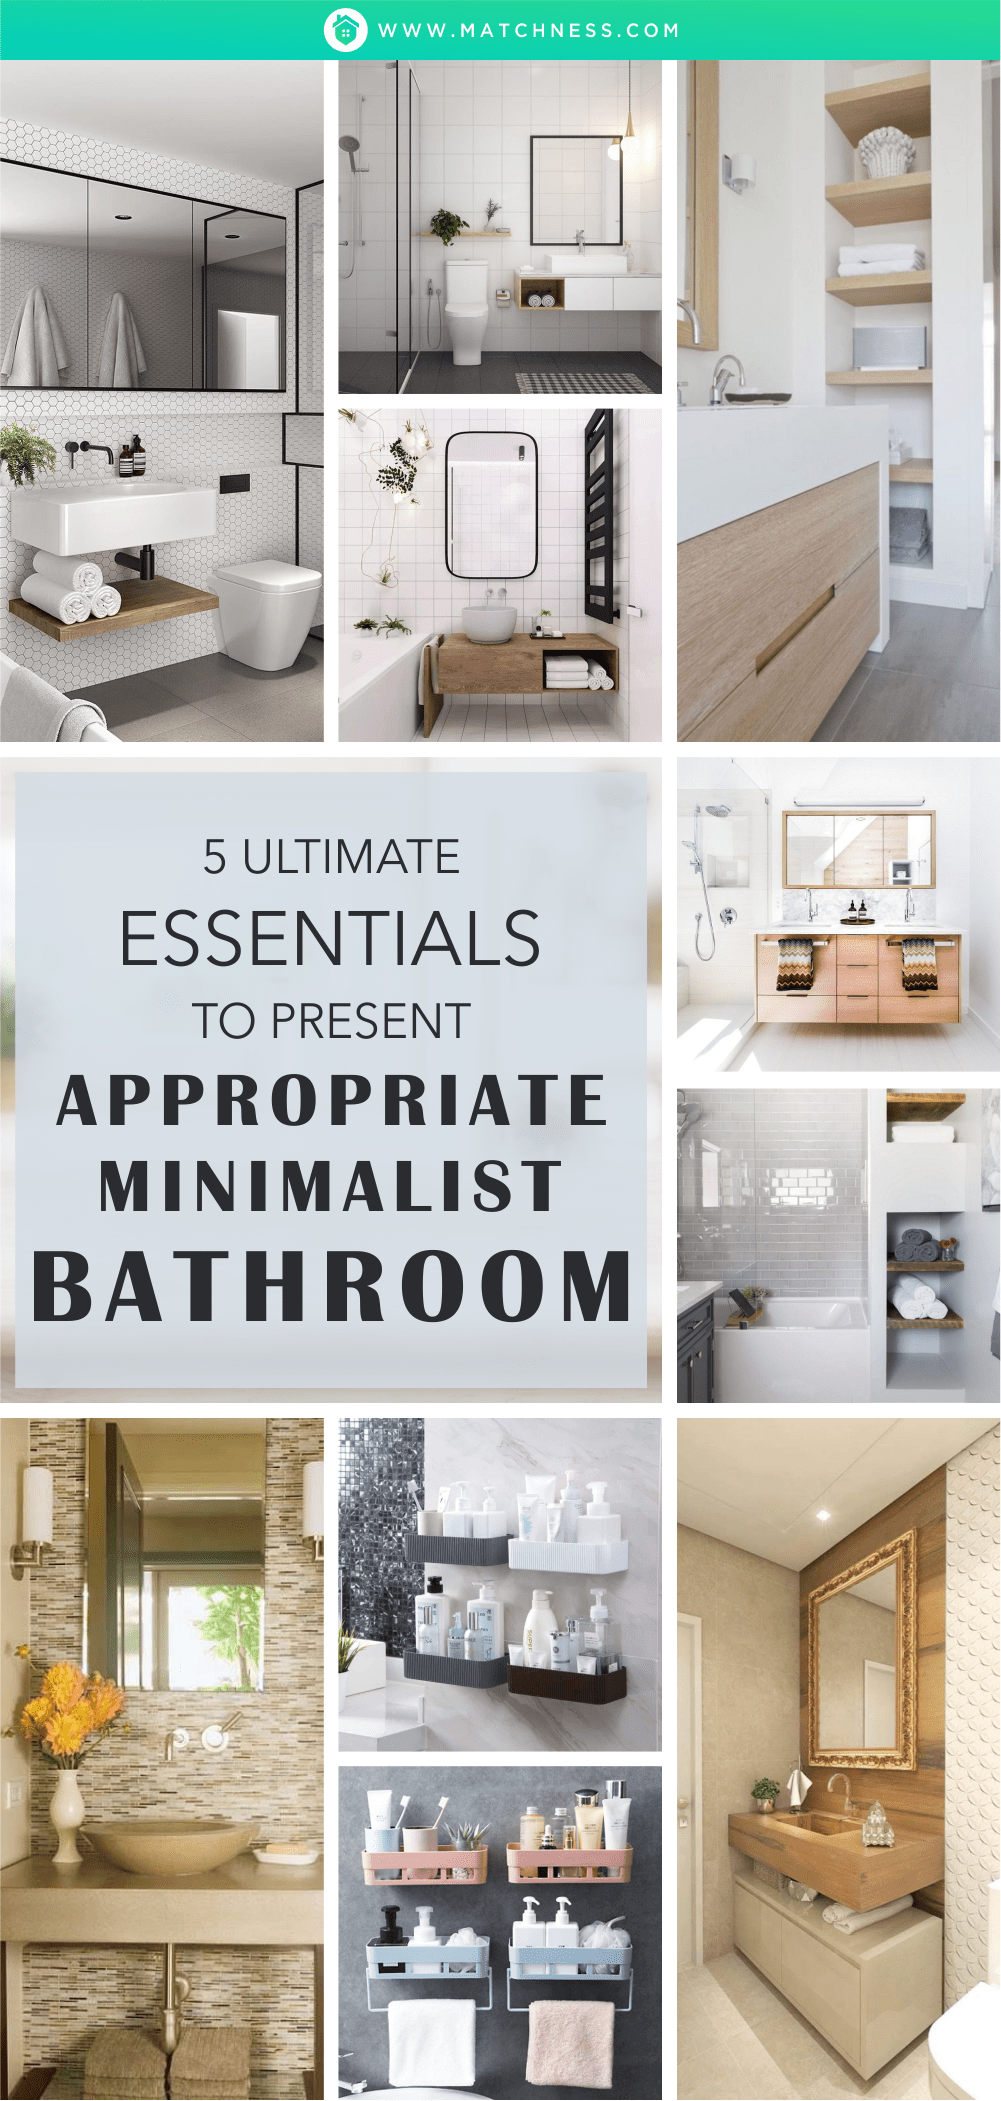 5-ultimate-essentials-to-present-appropriate-minimalist-bathroom-1